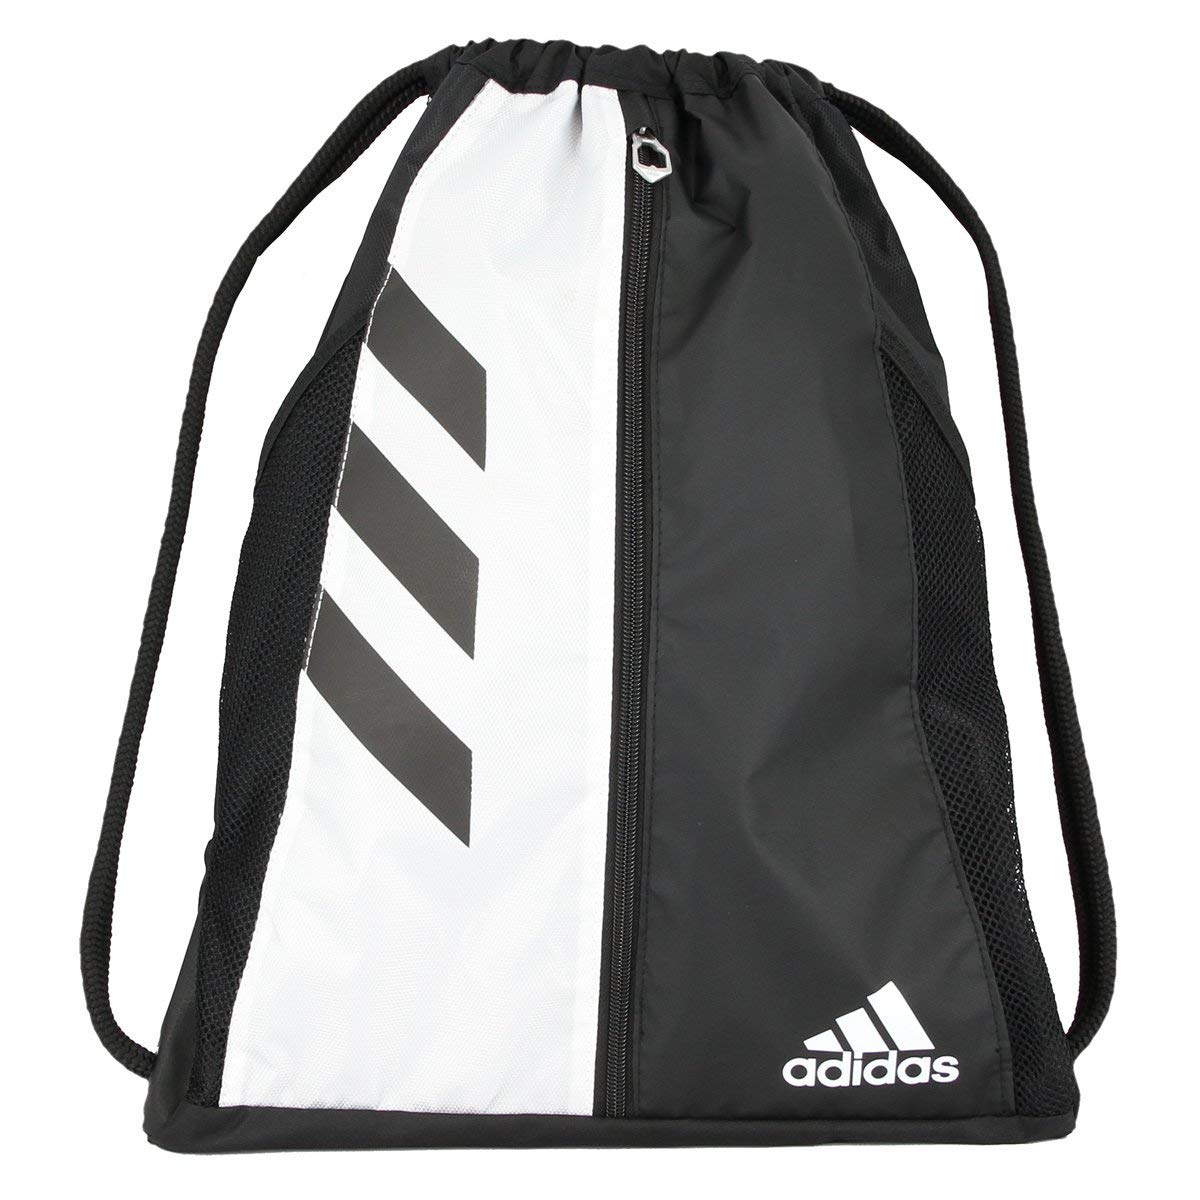 5ed25af5f158 Amazon offers this Adidas Team Issue Sackpack in color Black White on sale  for  7.86 (Reg.  22). This is made of 100% Polyester.